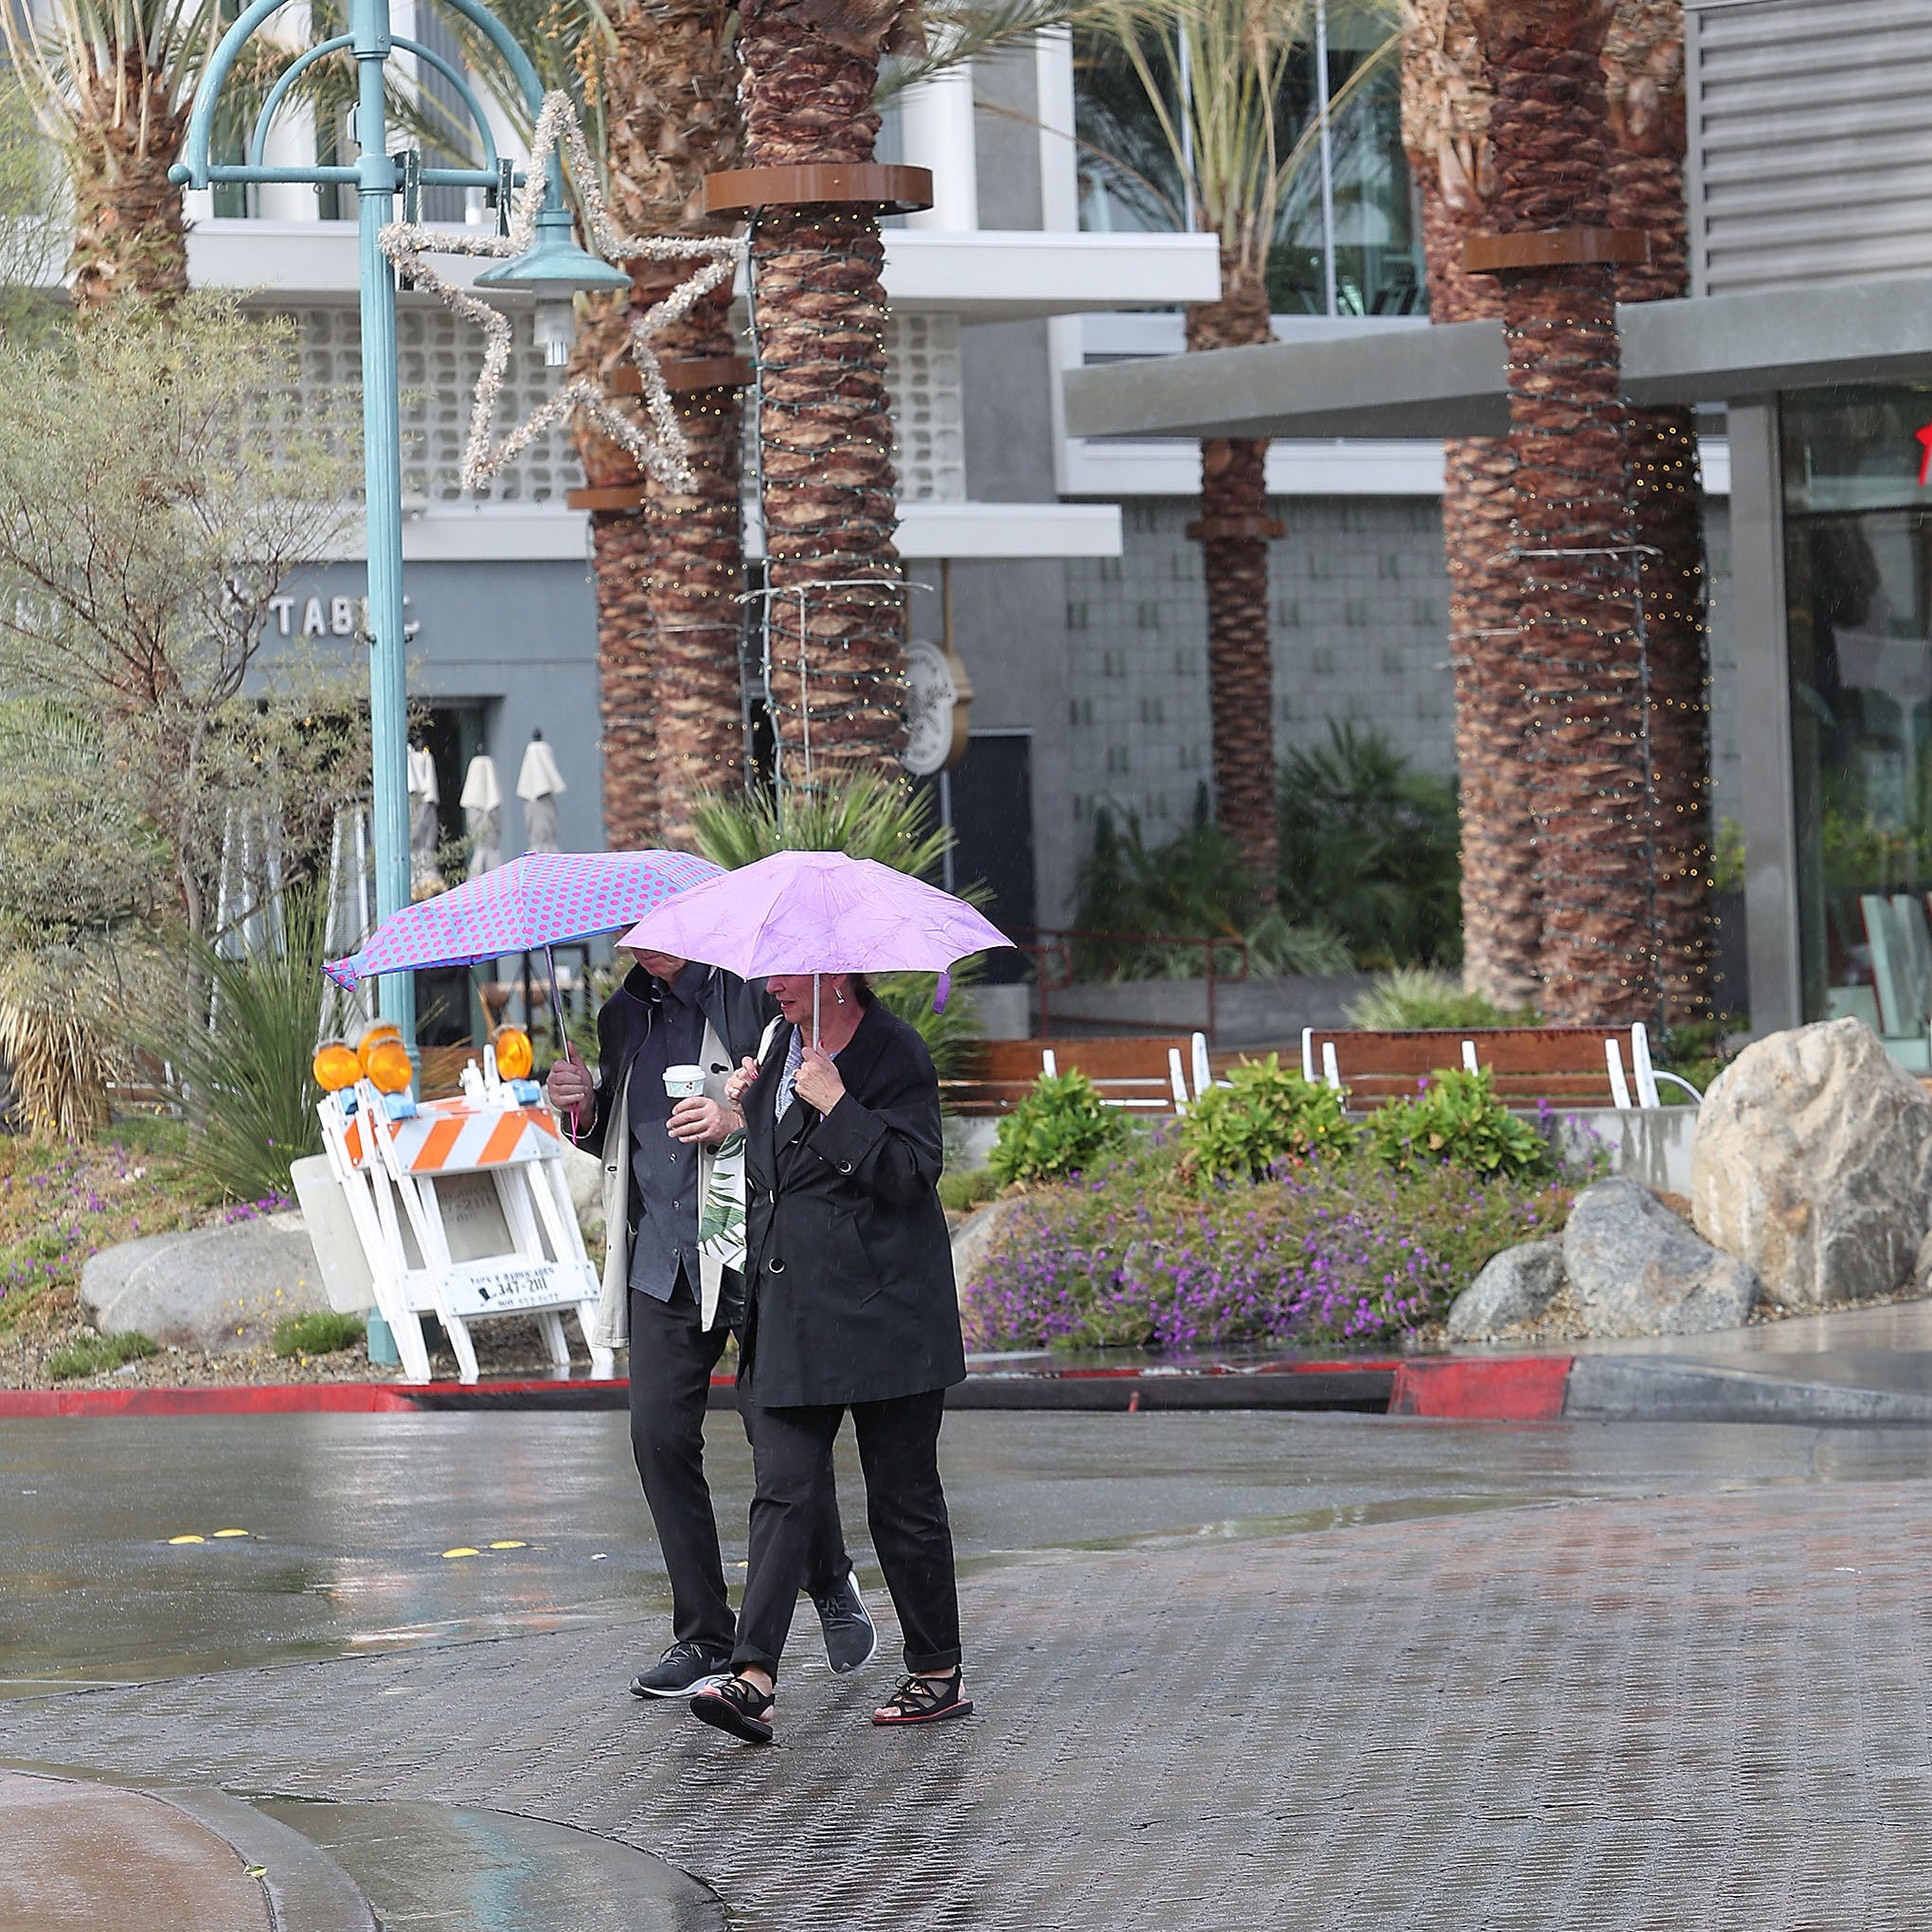 VillageFest canceled due to Palm Springs rain; experts warn of flooding in wildfire burn area